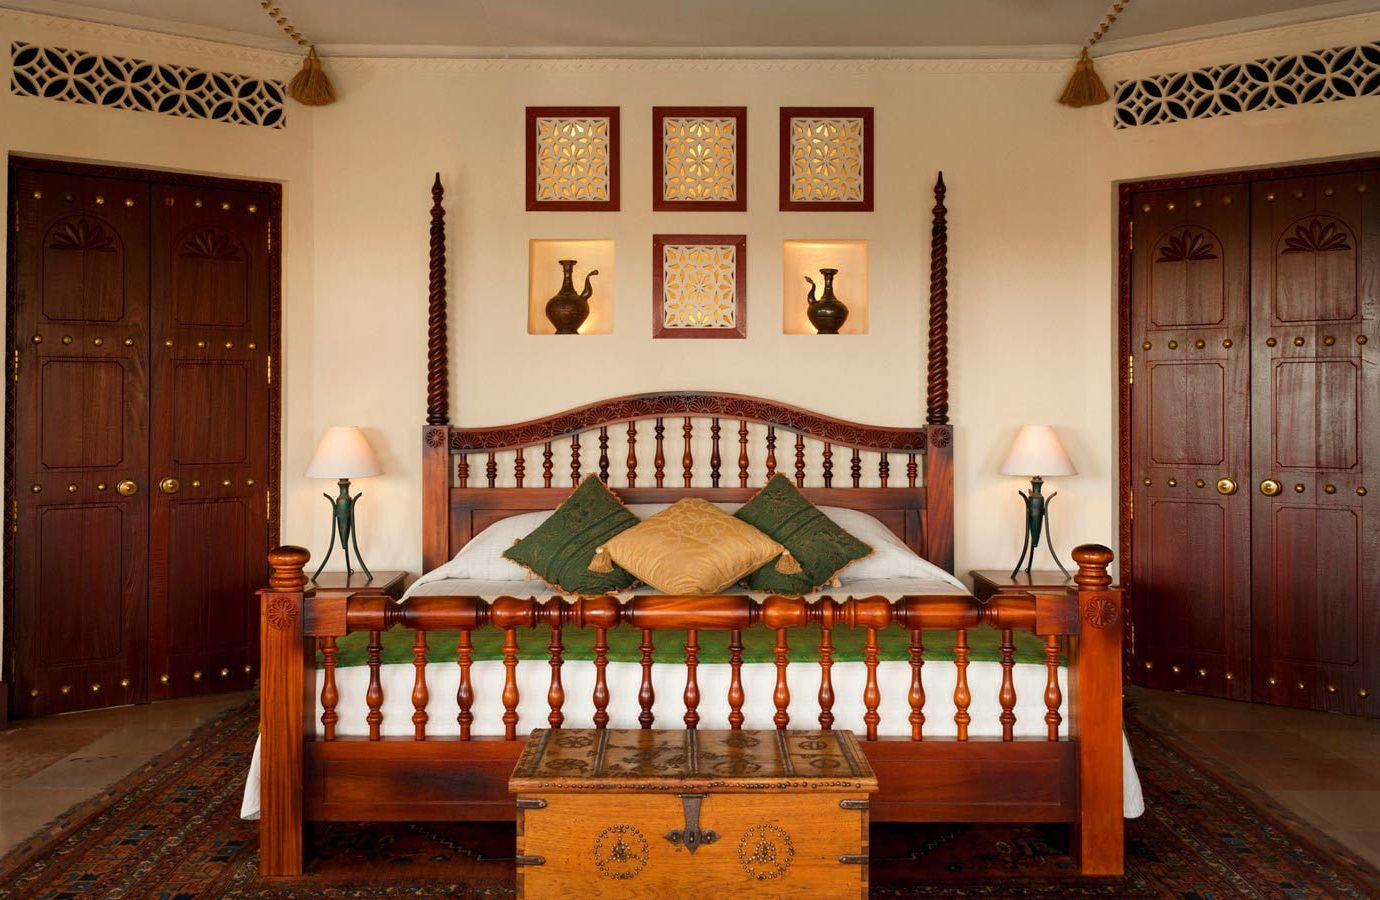 Dubai Hotels Luxury Travel Middle East furniture room bed frame interior design bed home estate Bedroom product real estate window